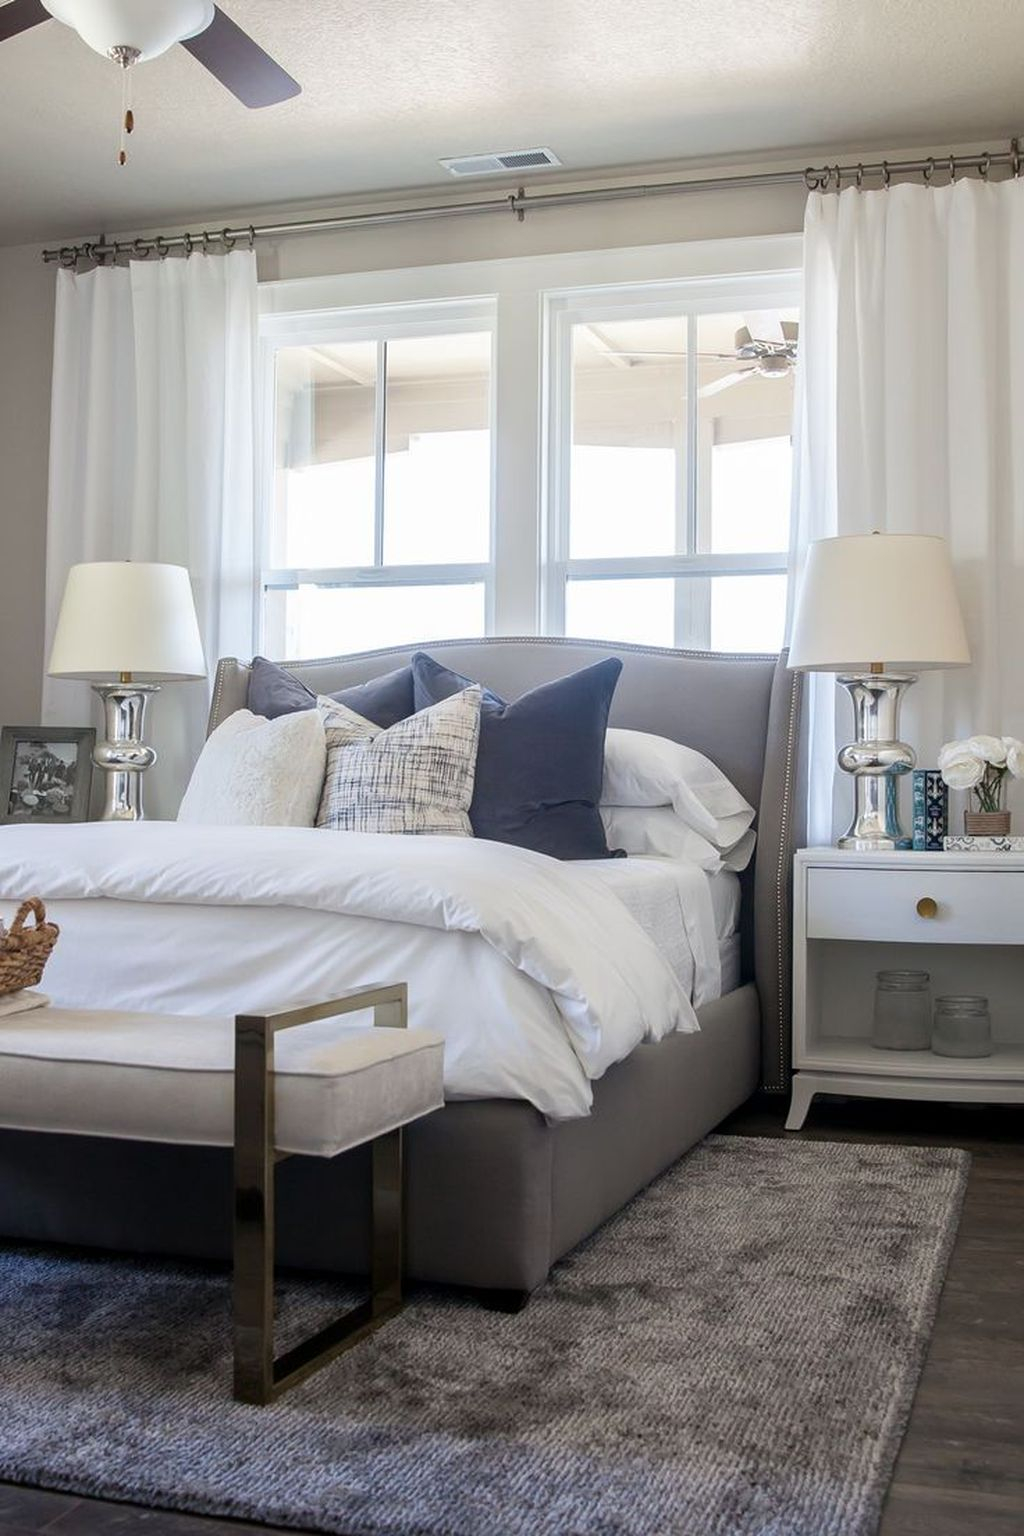 Modern Small Master Bedroom On A Budget 29